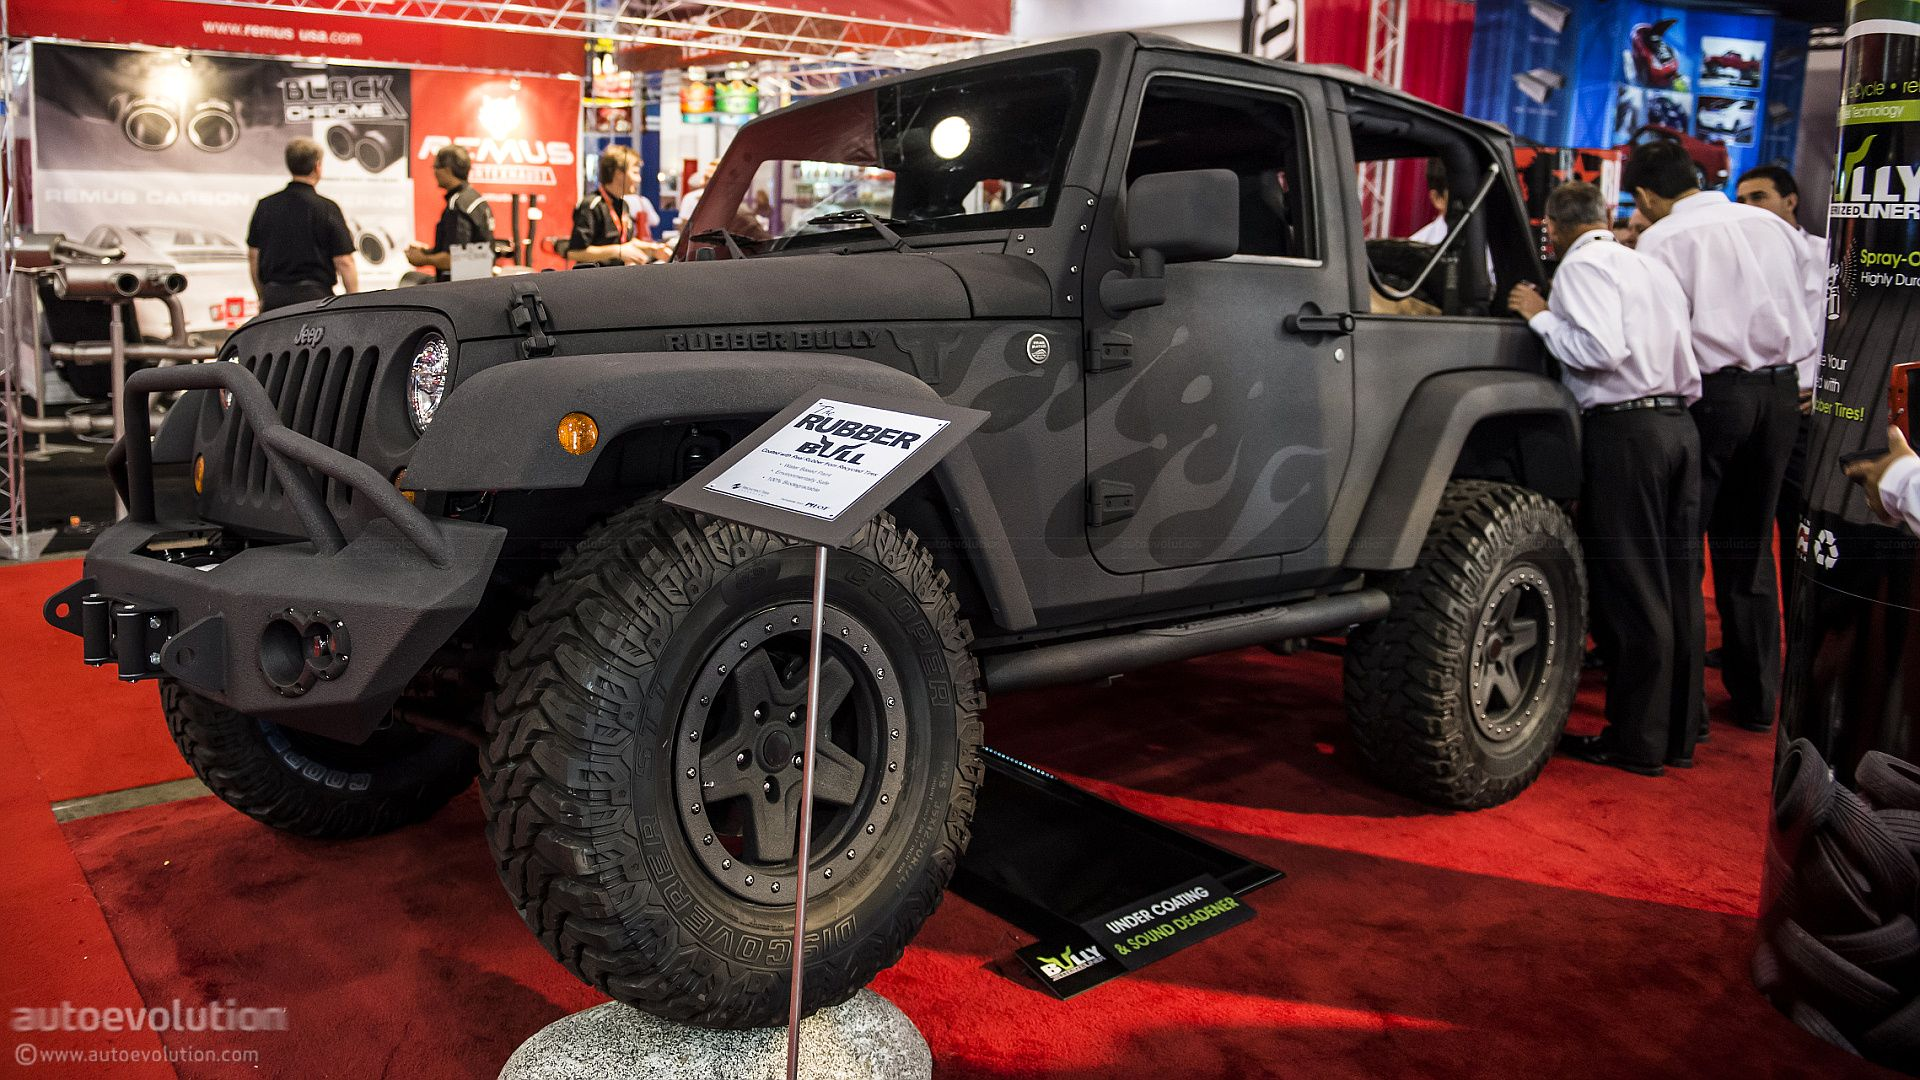 rubber bully jeep wrangler this is one of my favorite jeeps from sema